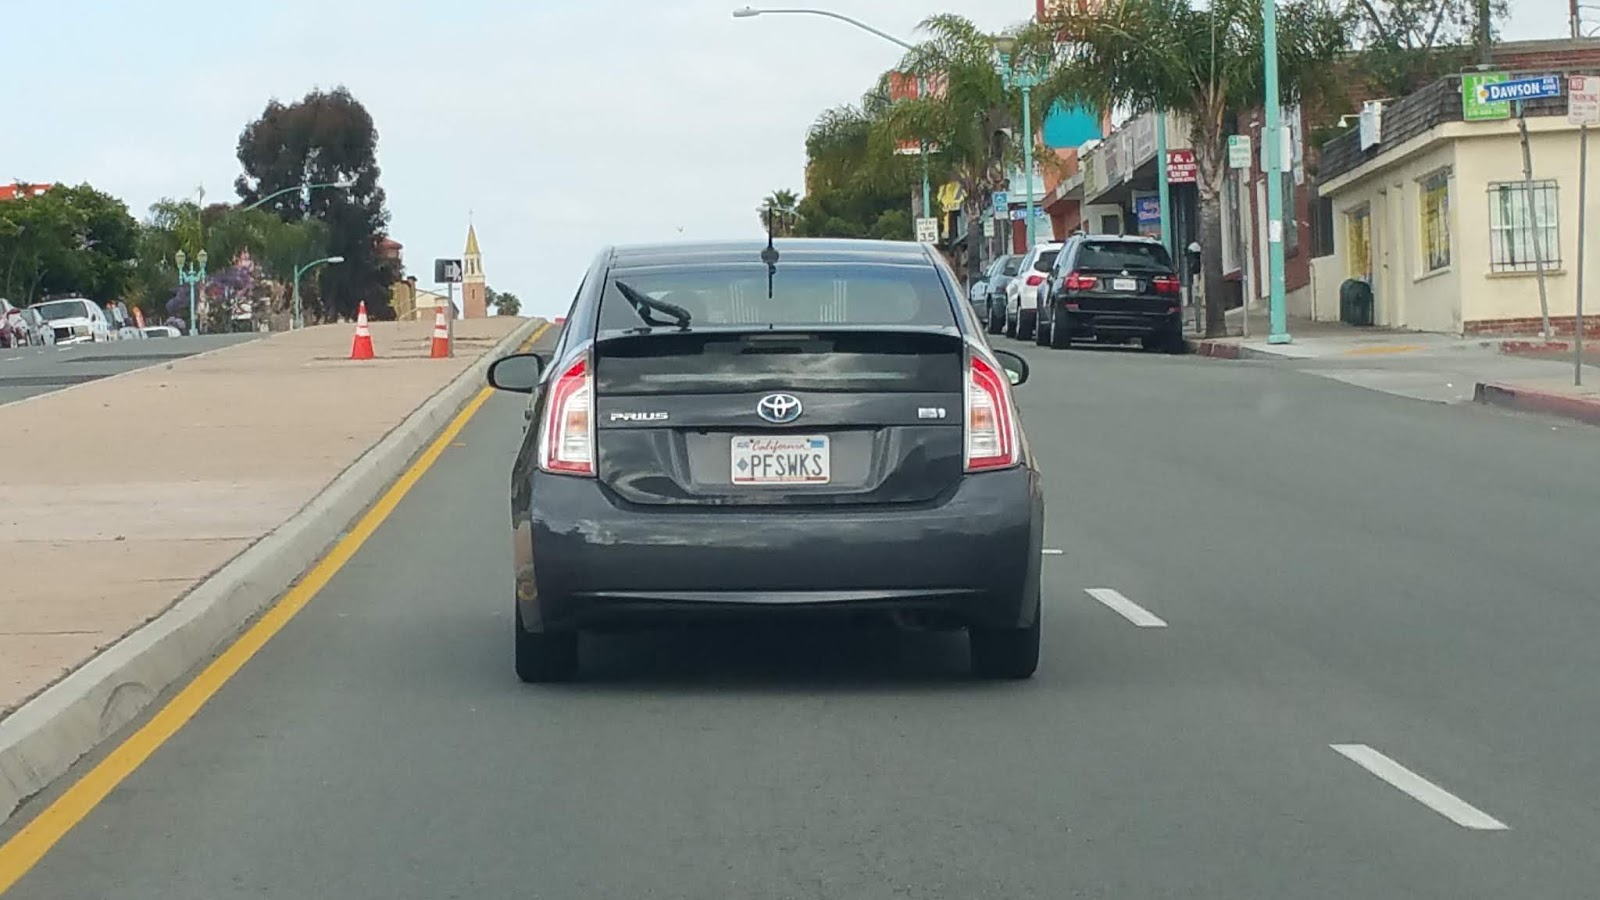 Just A Car Guy: can anyone figure out this license plate's